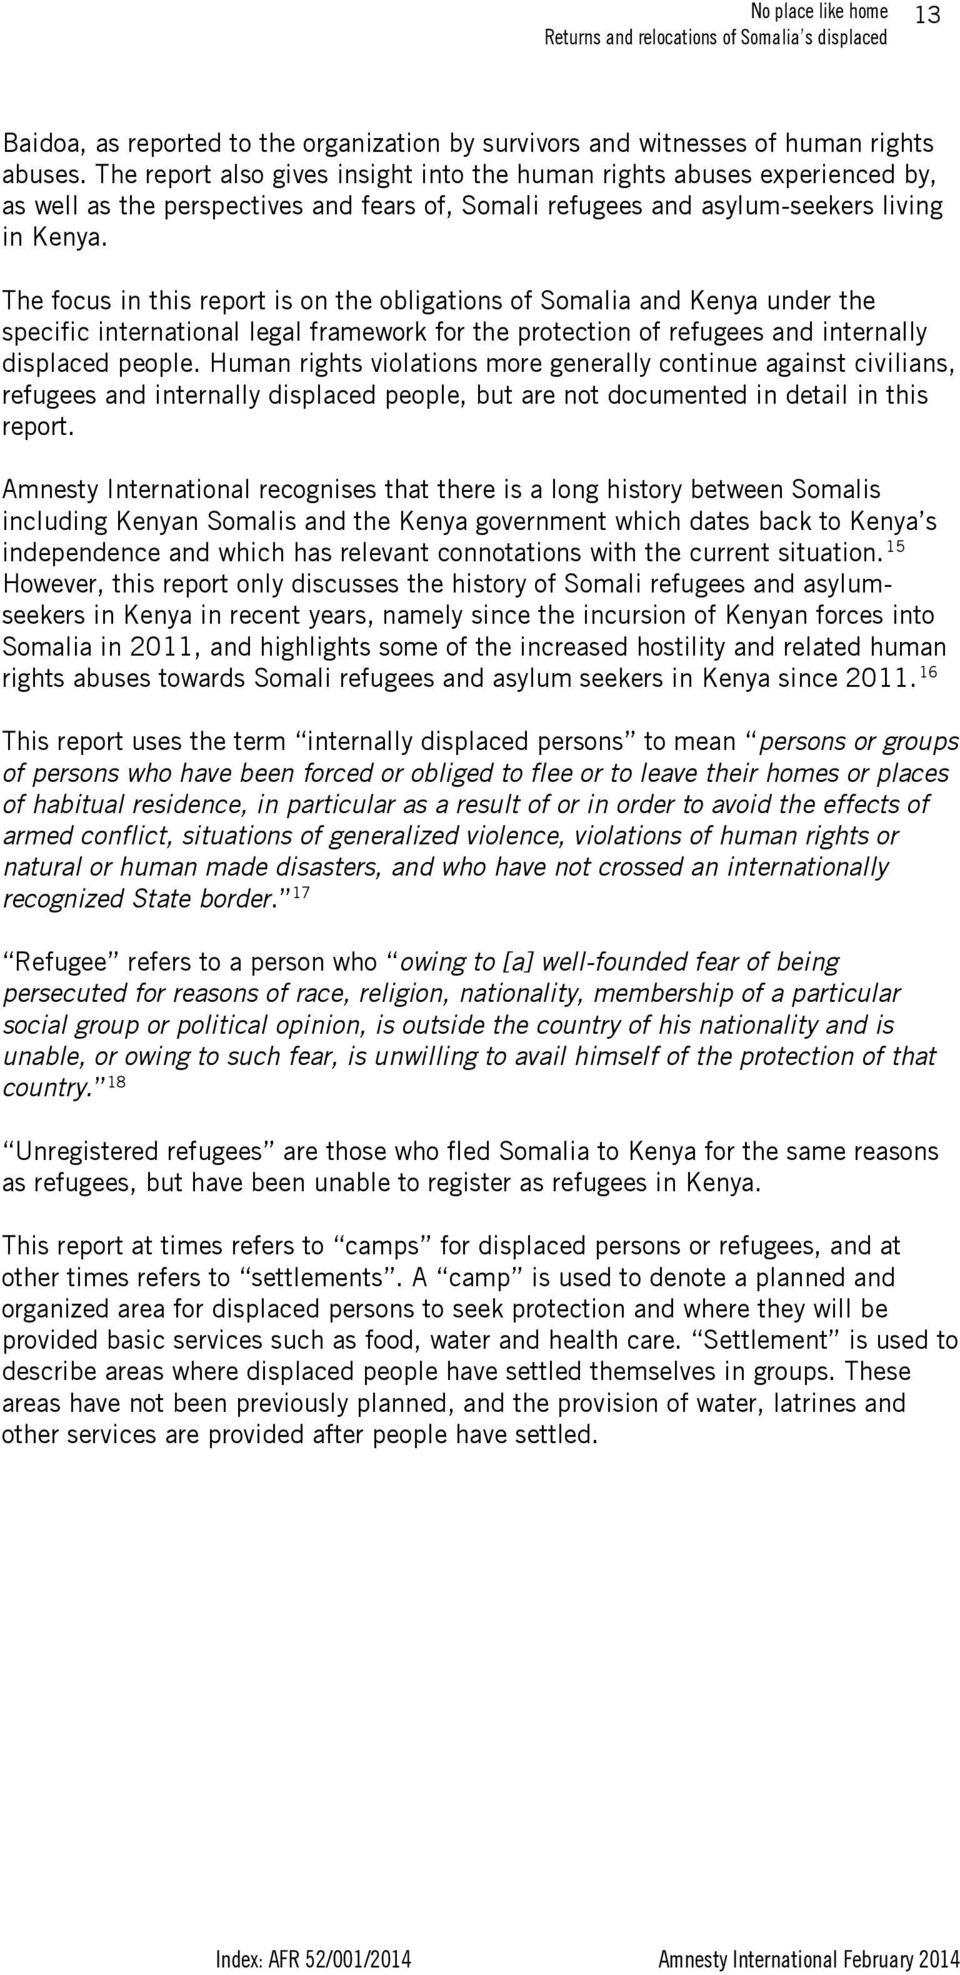 The focus in this report is on the obligations of Somalia and Kenya under the specific international legal framework for the protection of refugees and internally displaced people.